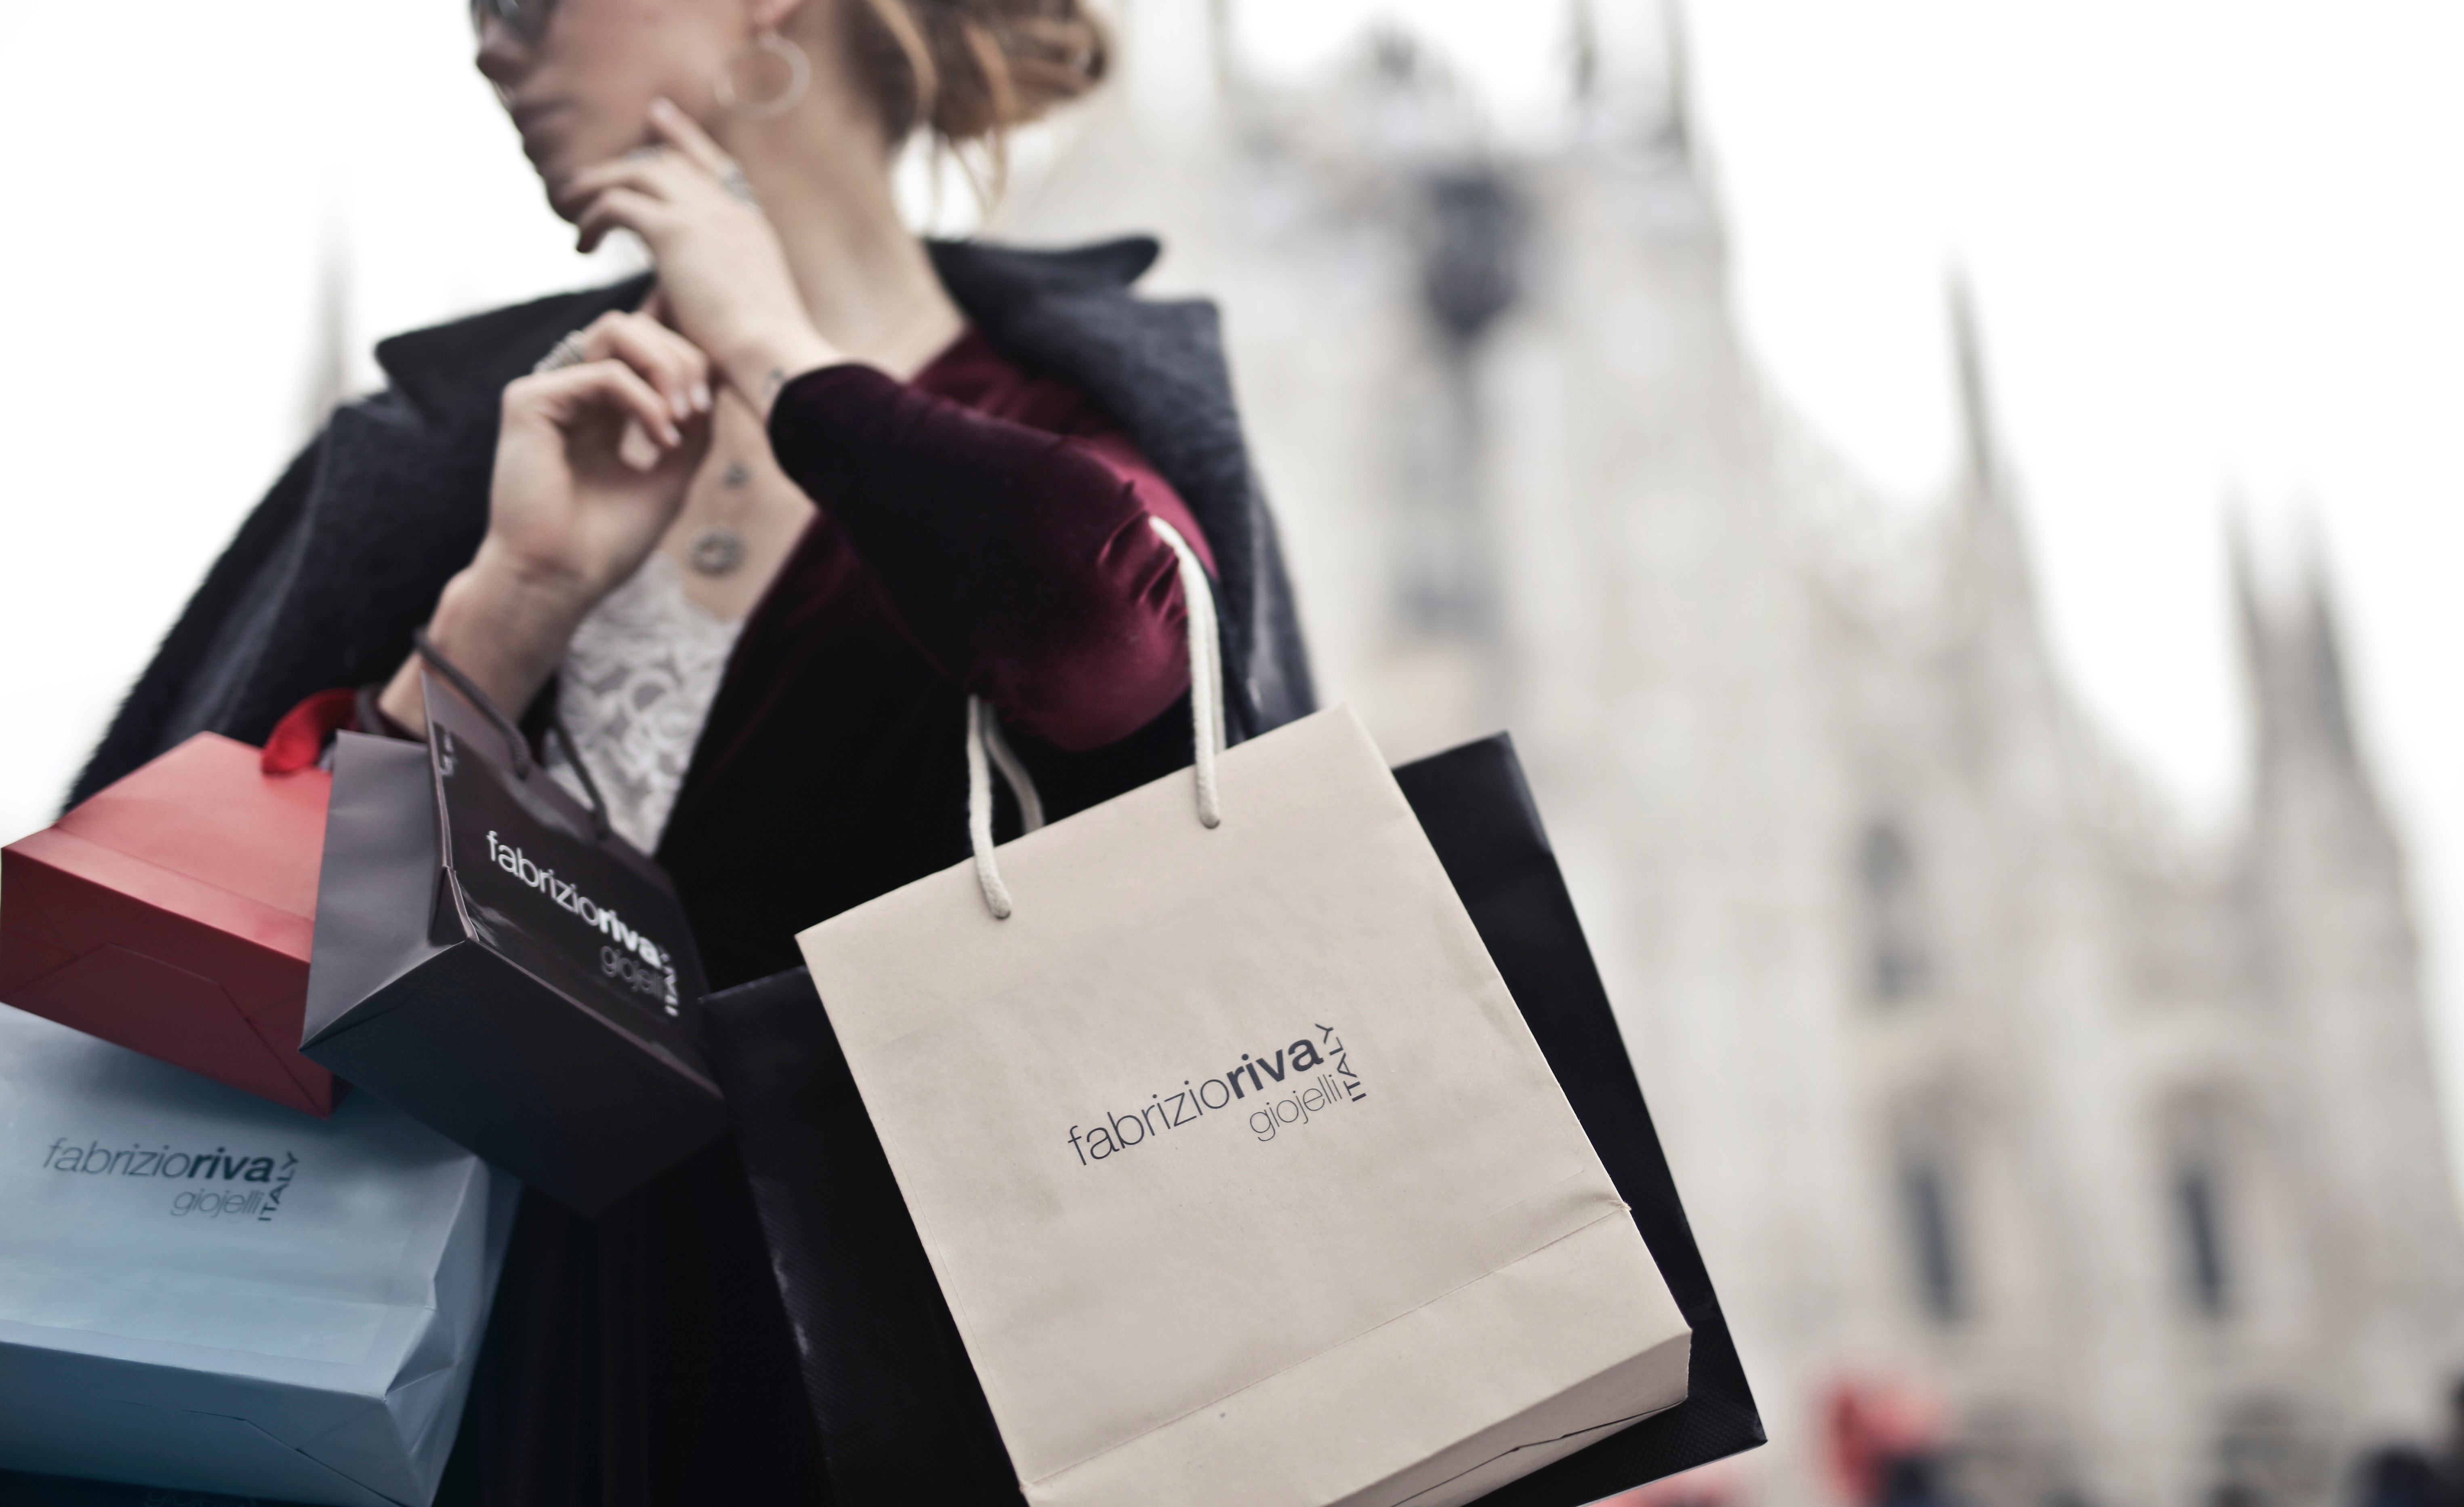 Woman Holding Shopping Bags, Adult, Blur, Caucasian, City, HQ Photo